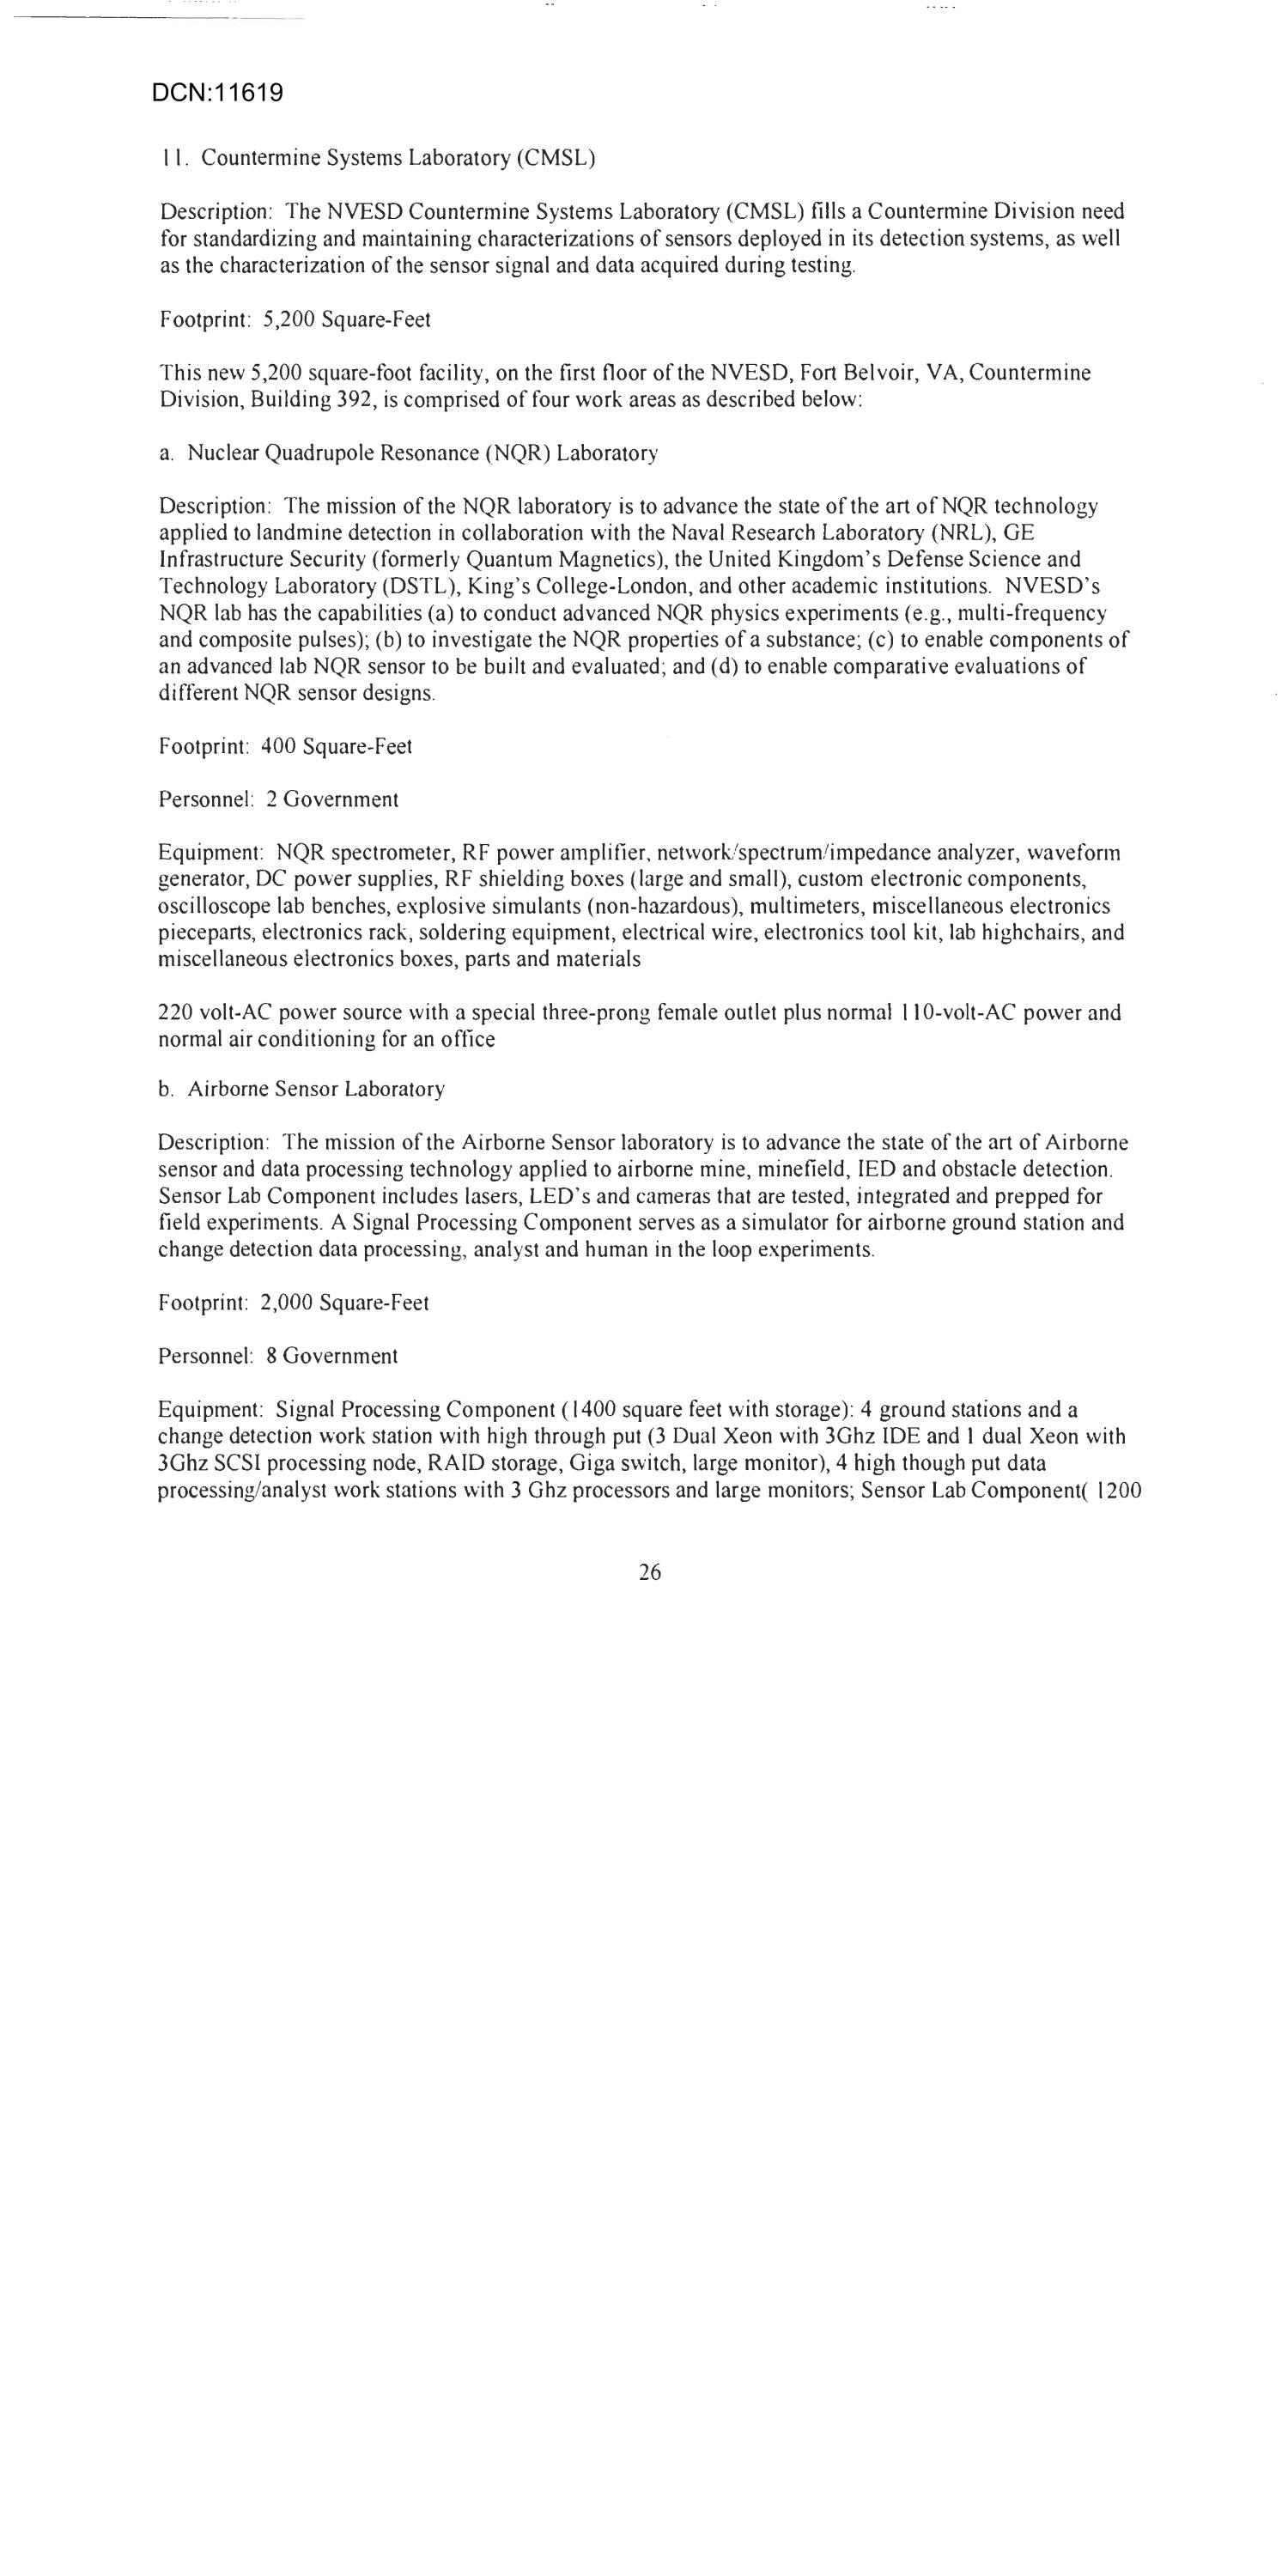 brac analysis notes and research page 27 of 140 digital library